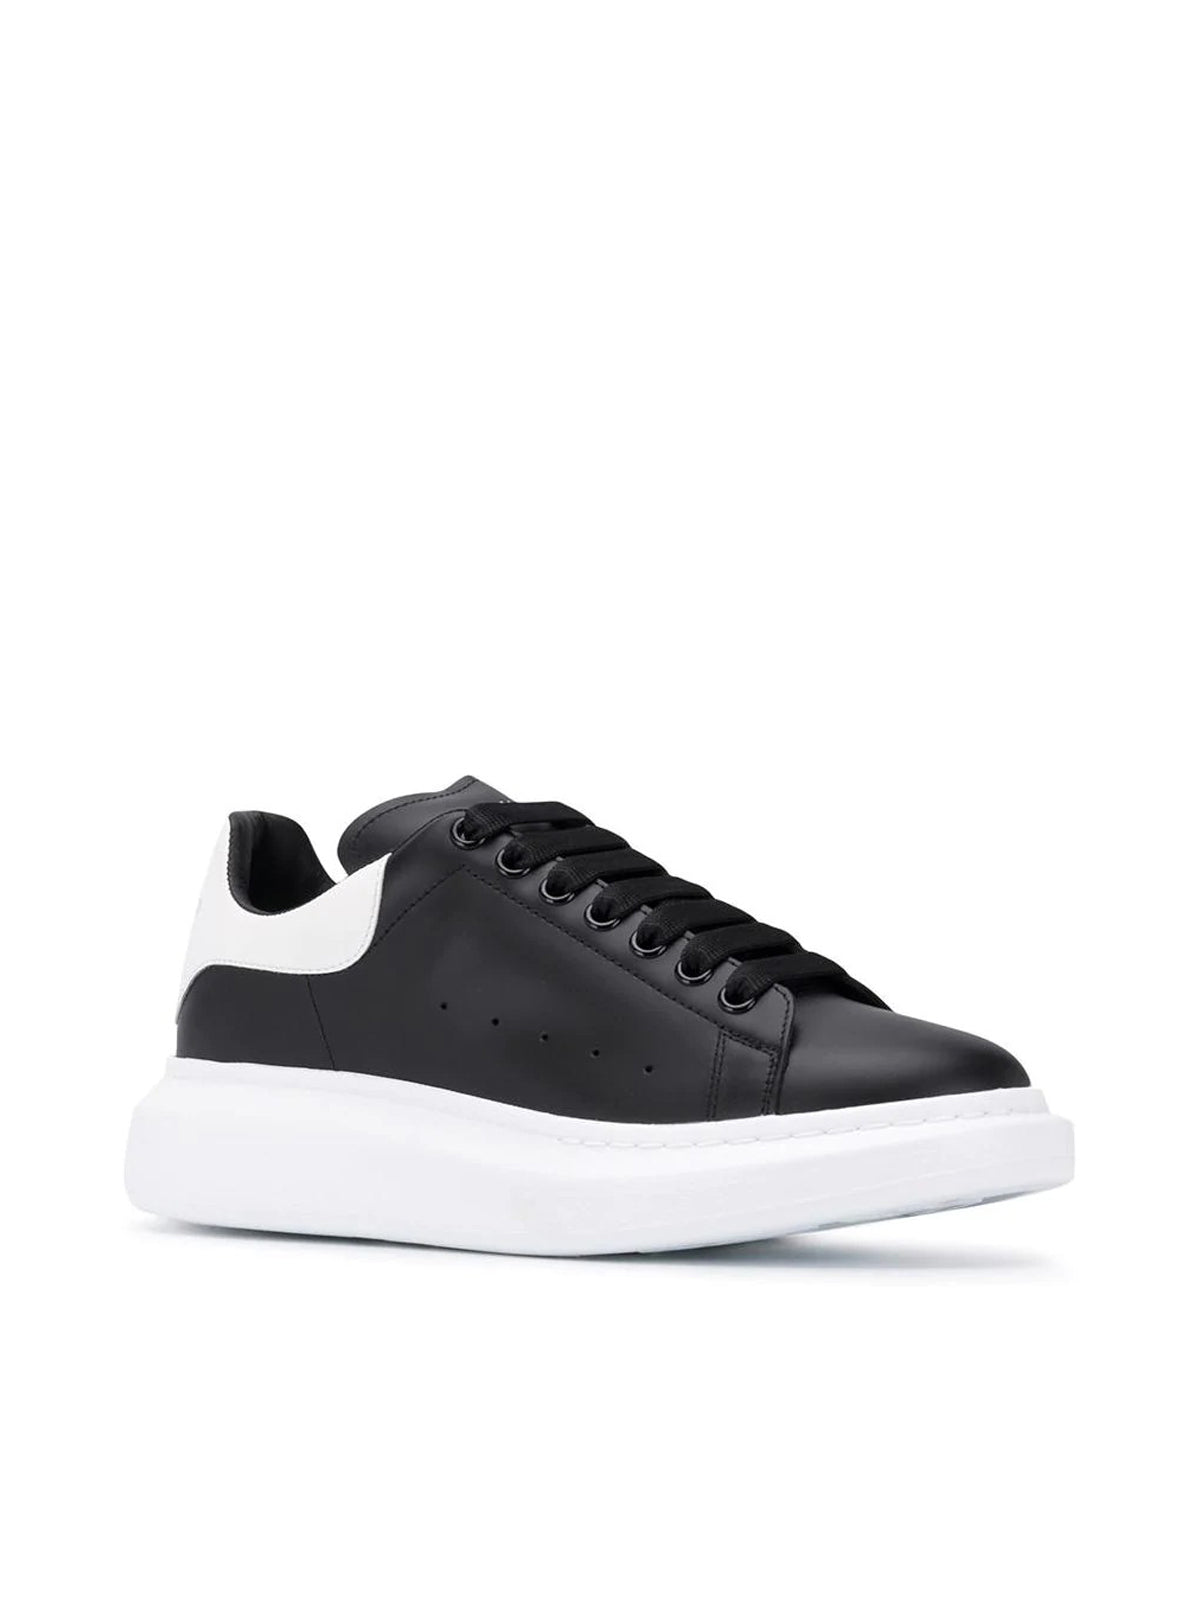 LACED LOWTOP SNEAKERS